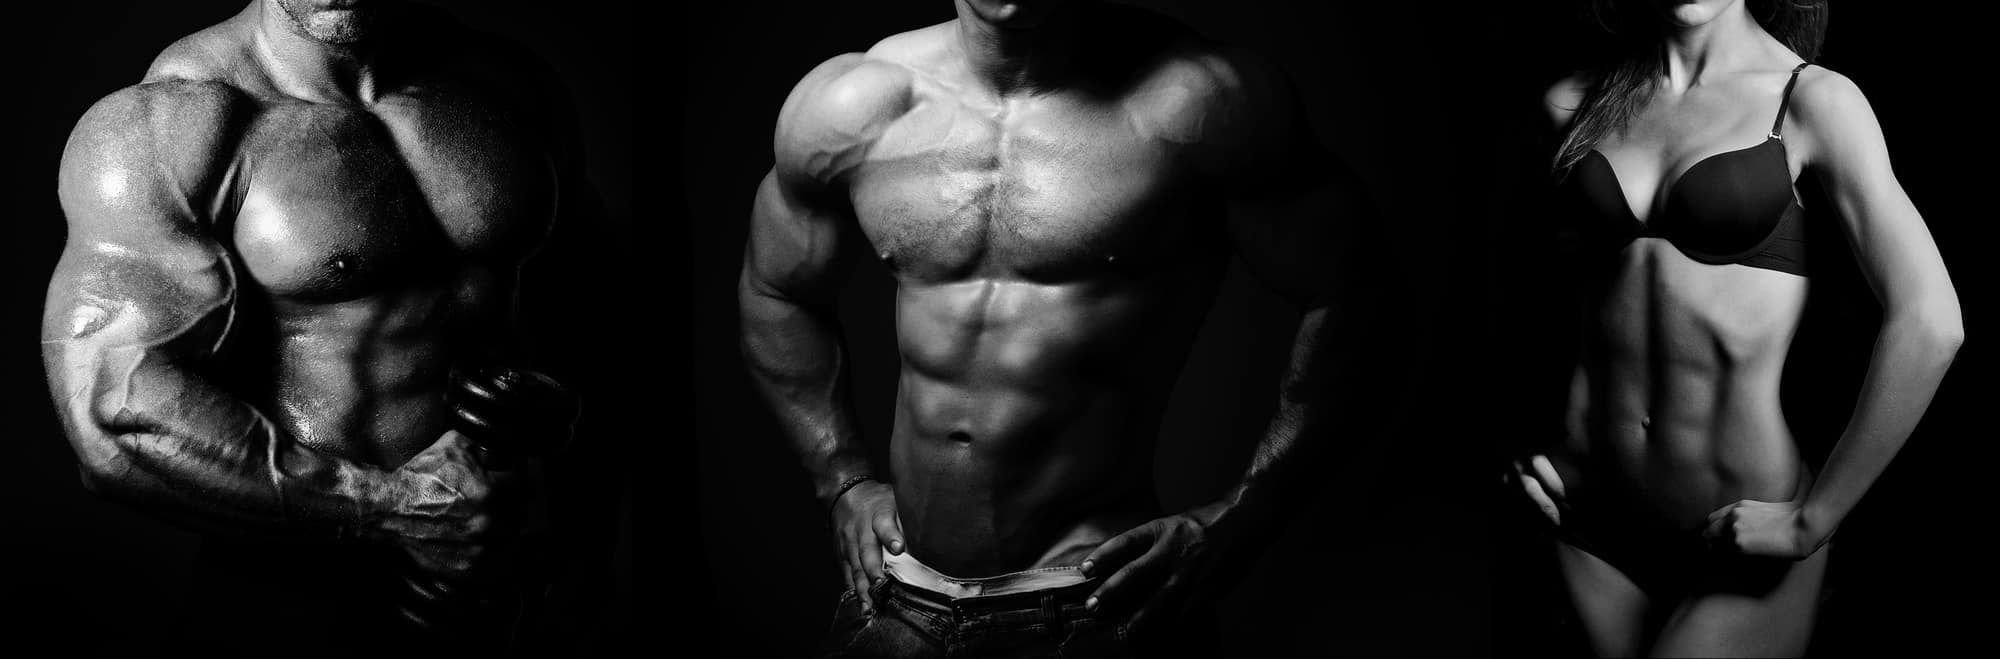 SARMS - (Step-by-Step) Complete Beginner's Guide Fun workouts Wall workout Weight training